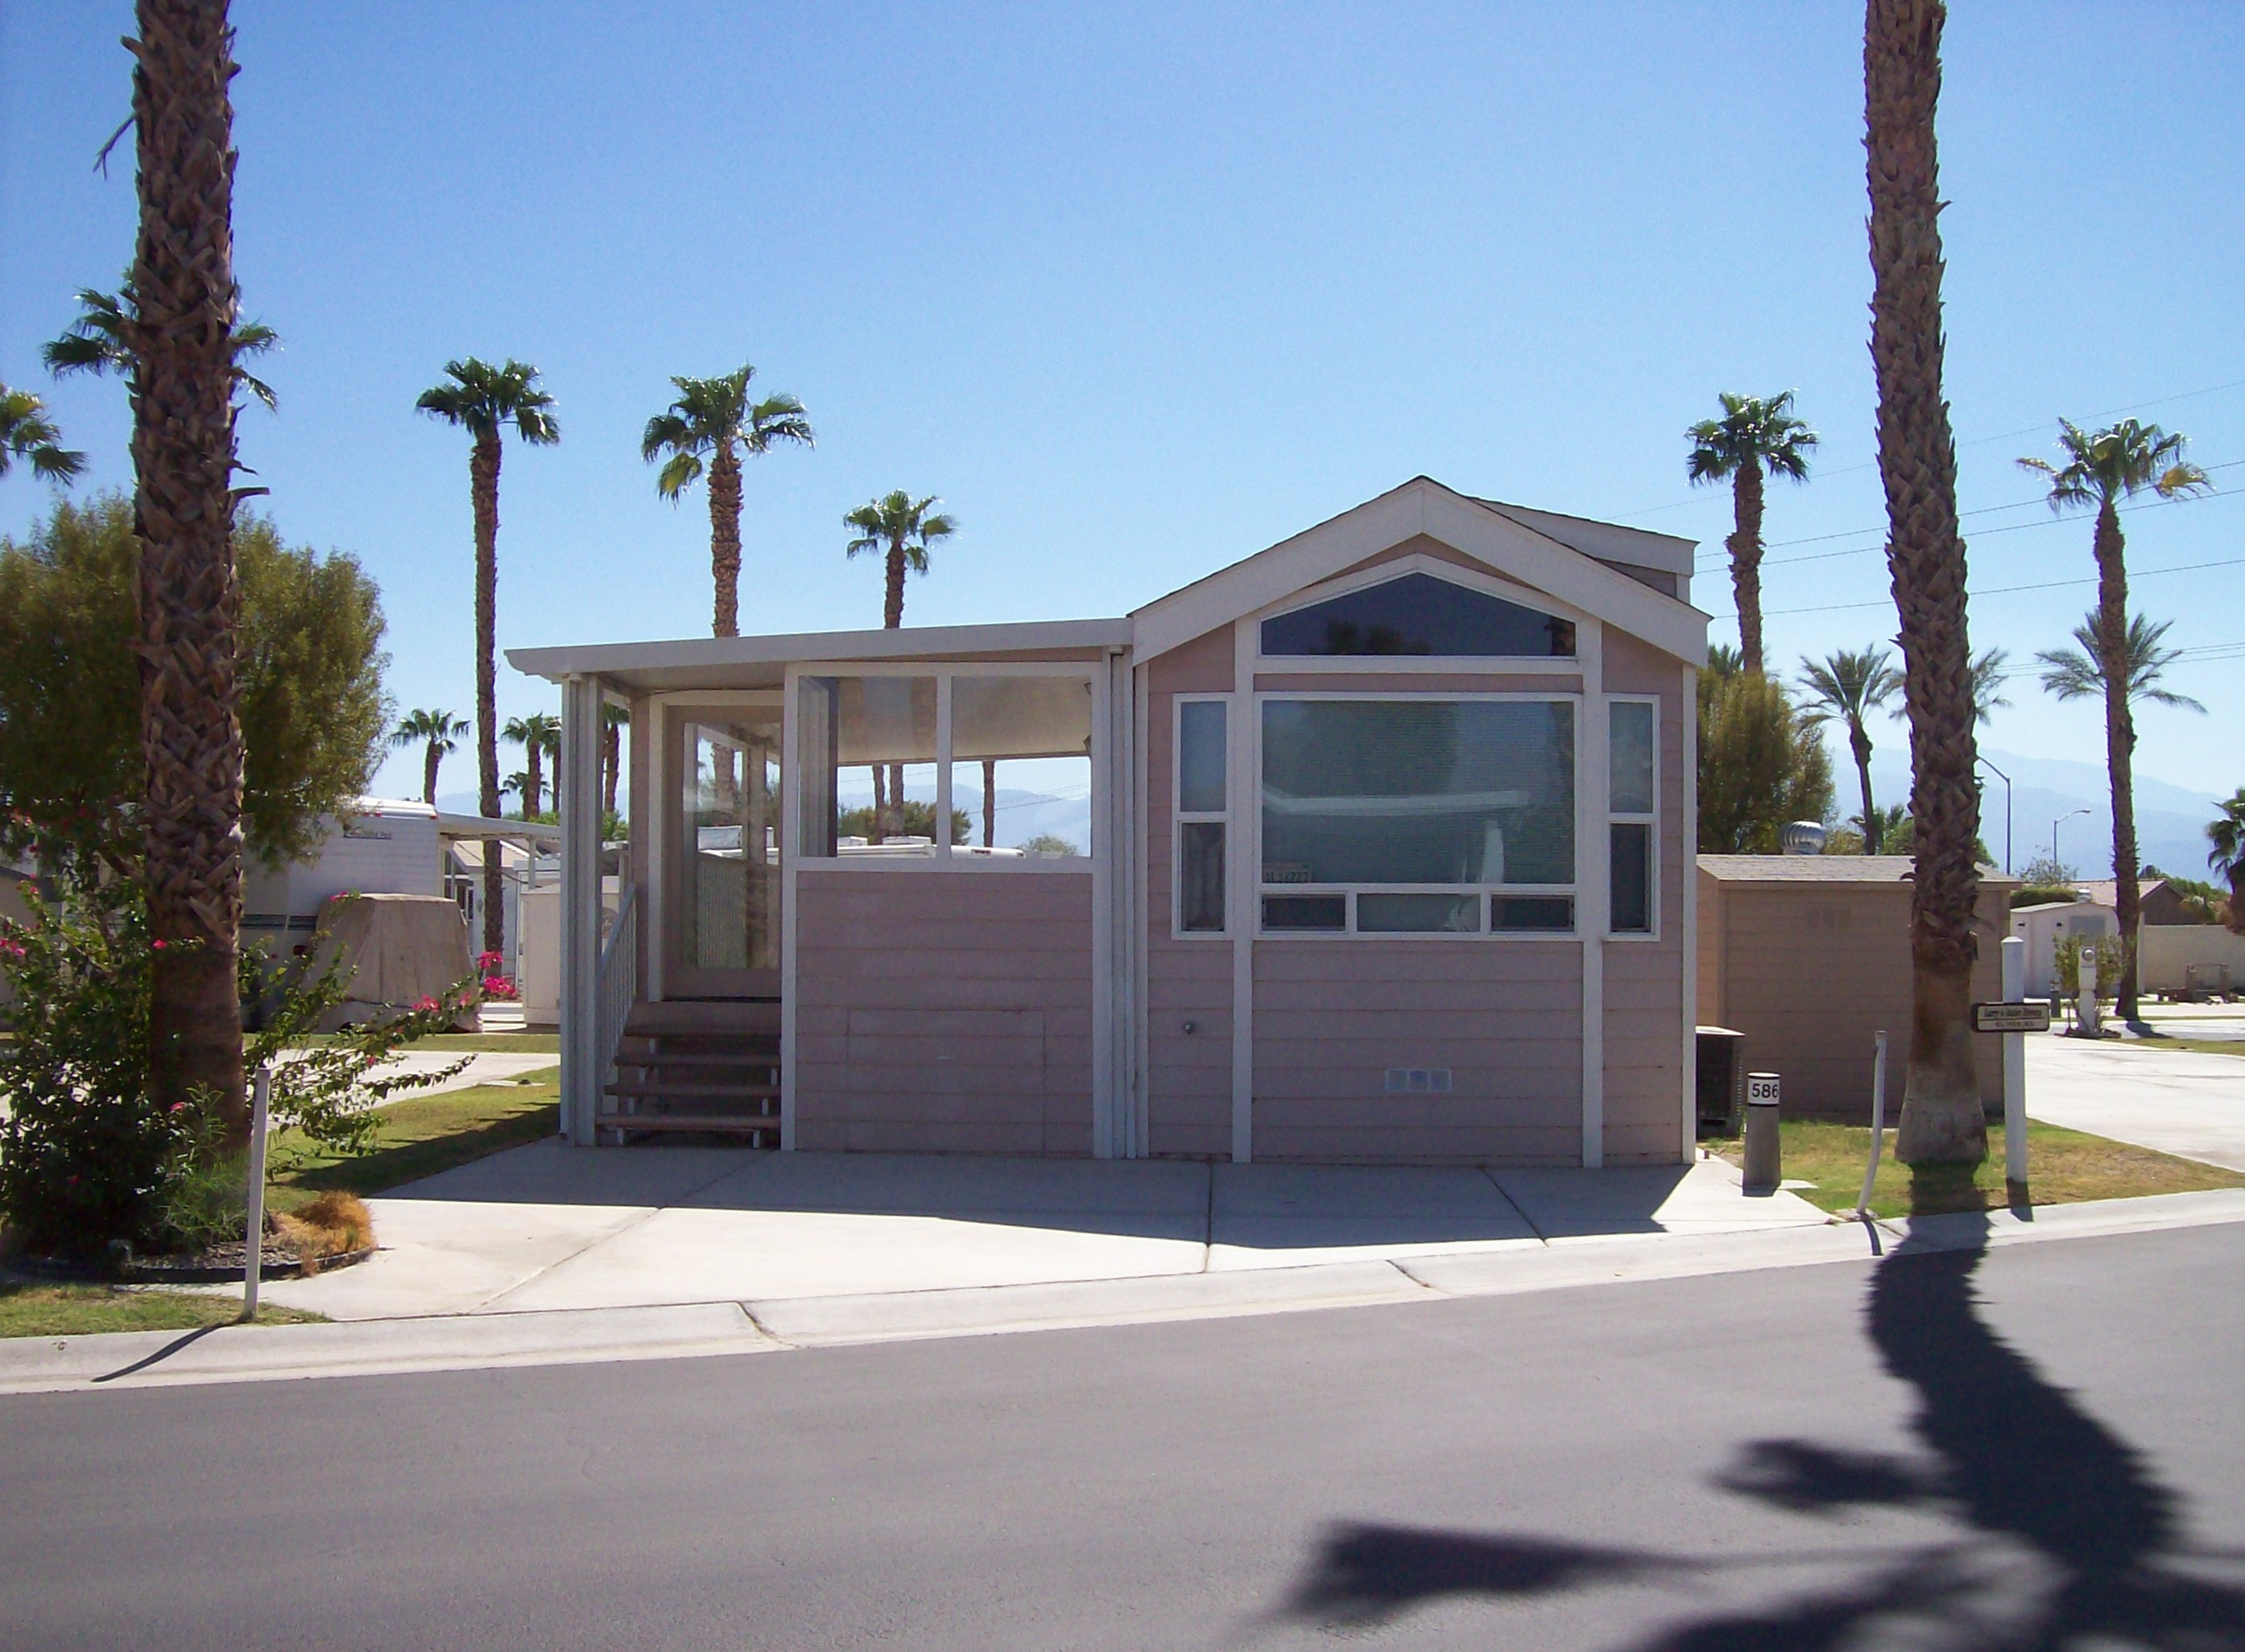 Park model homes for sale in indio ca